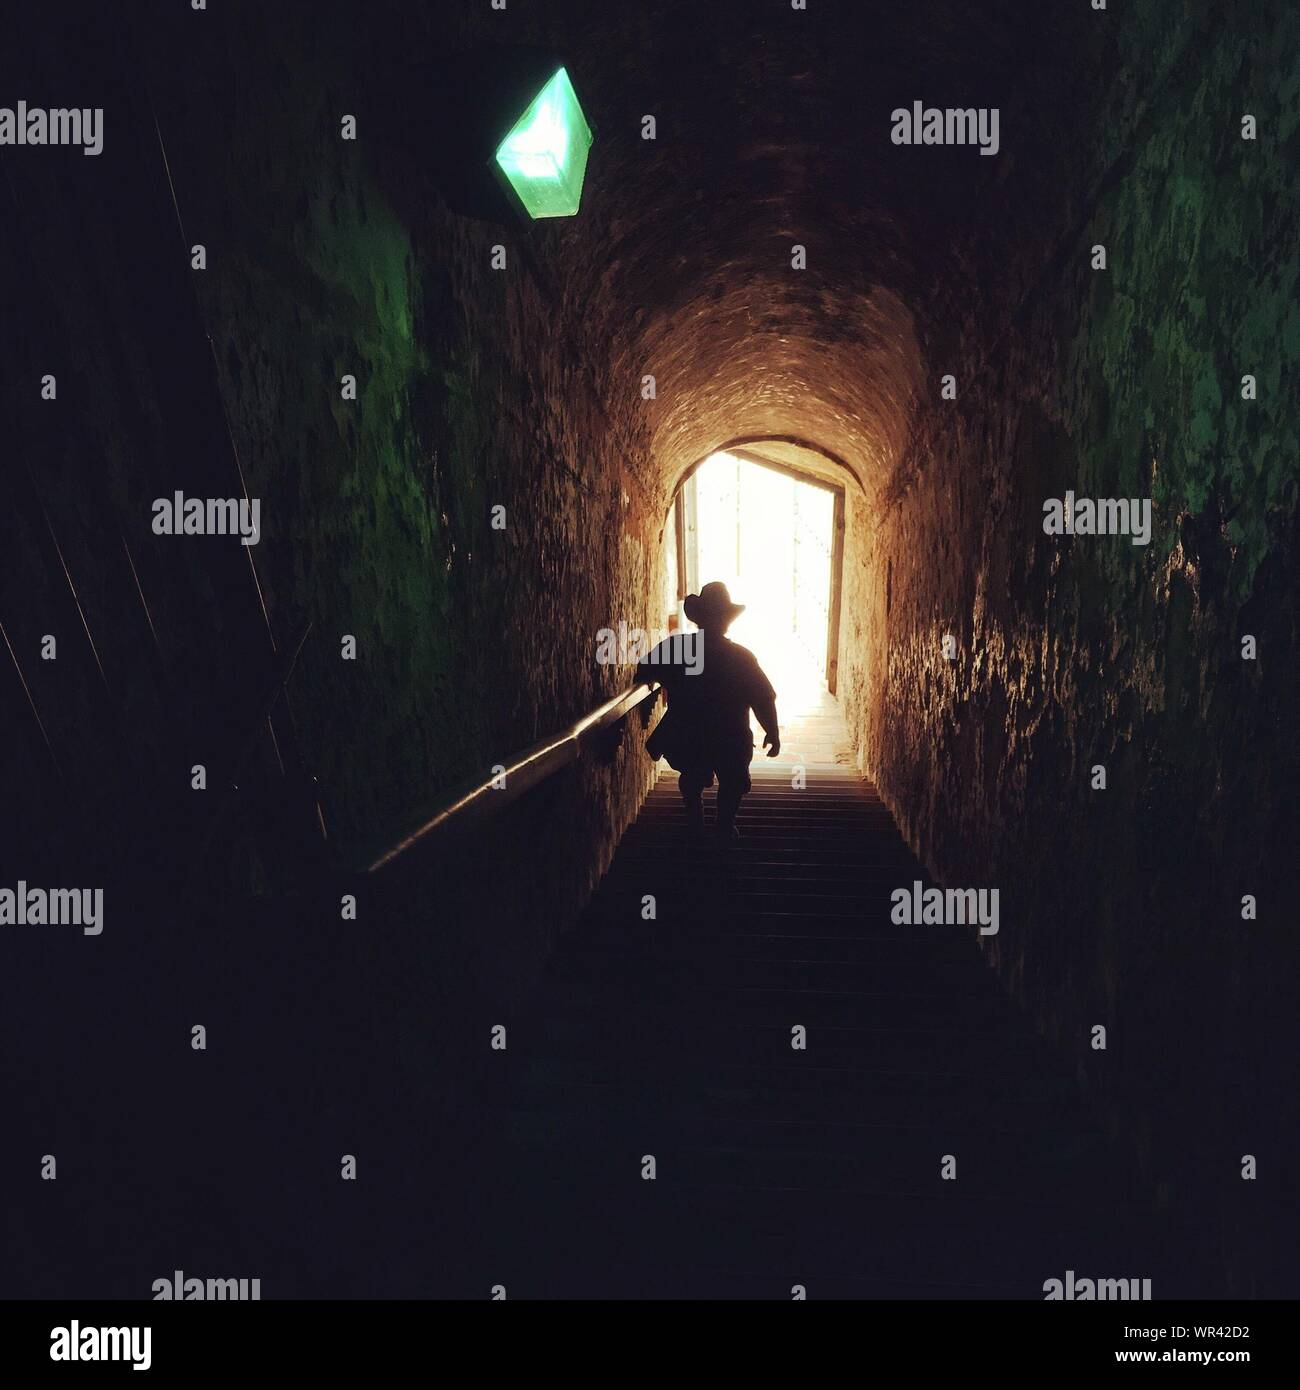 Rear View Of Silhouette Man Moving Down Steps In Tunnel Stock Photo